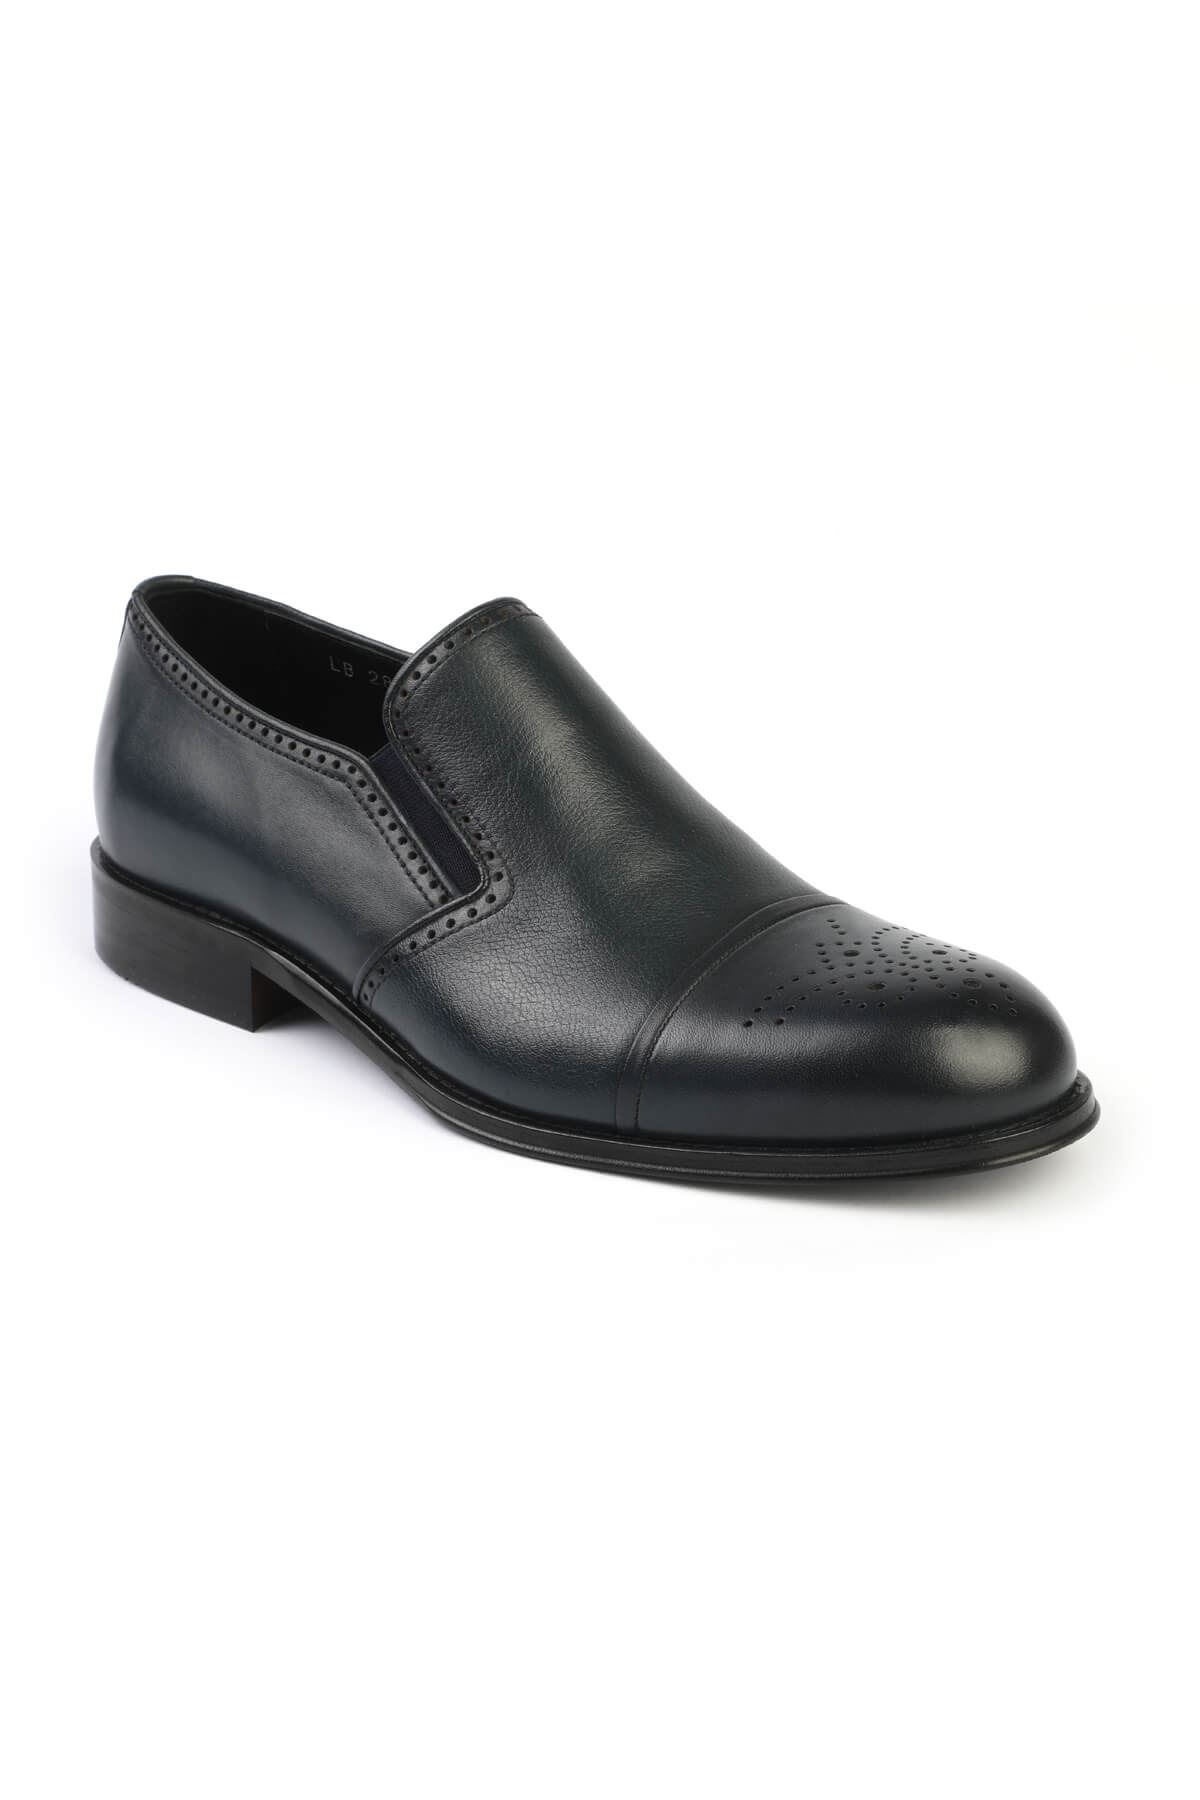 Libero 2871 Black Classic Shoes